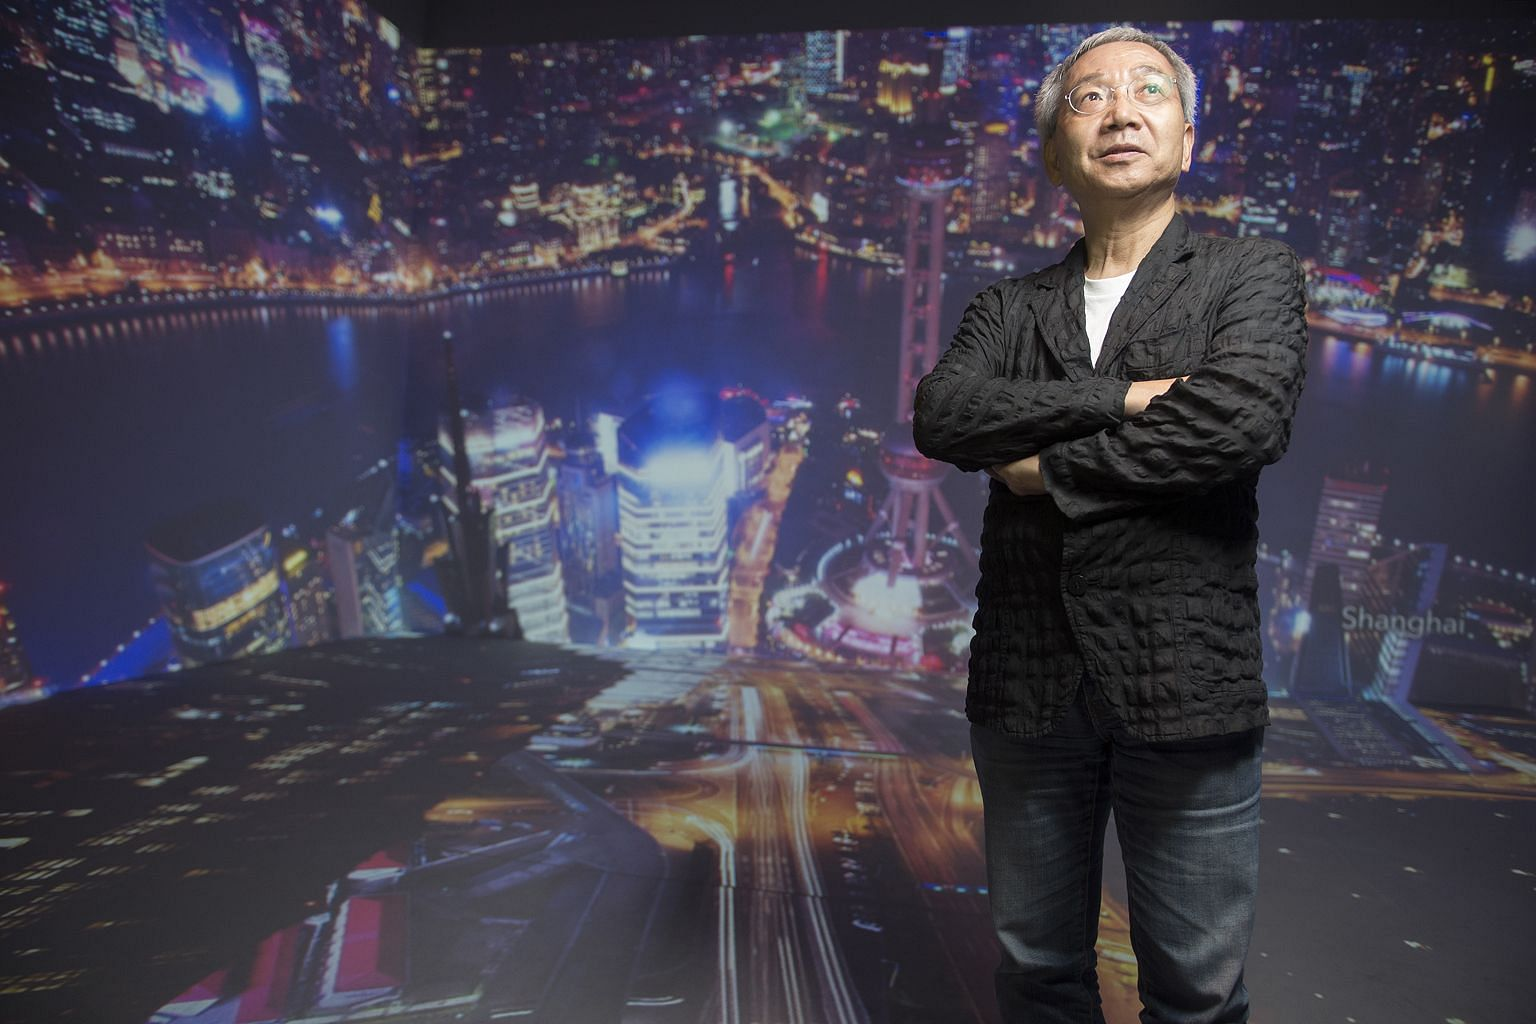 Award-winning lighting designer Kaoru Mende and his team organised the exhibition to show how cities and people use light.